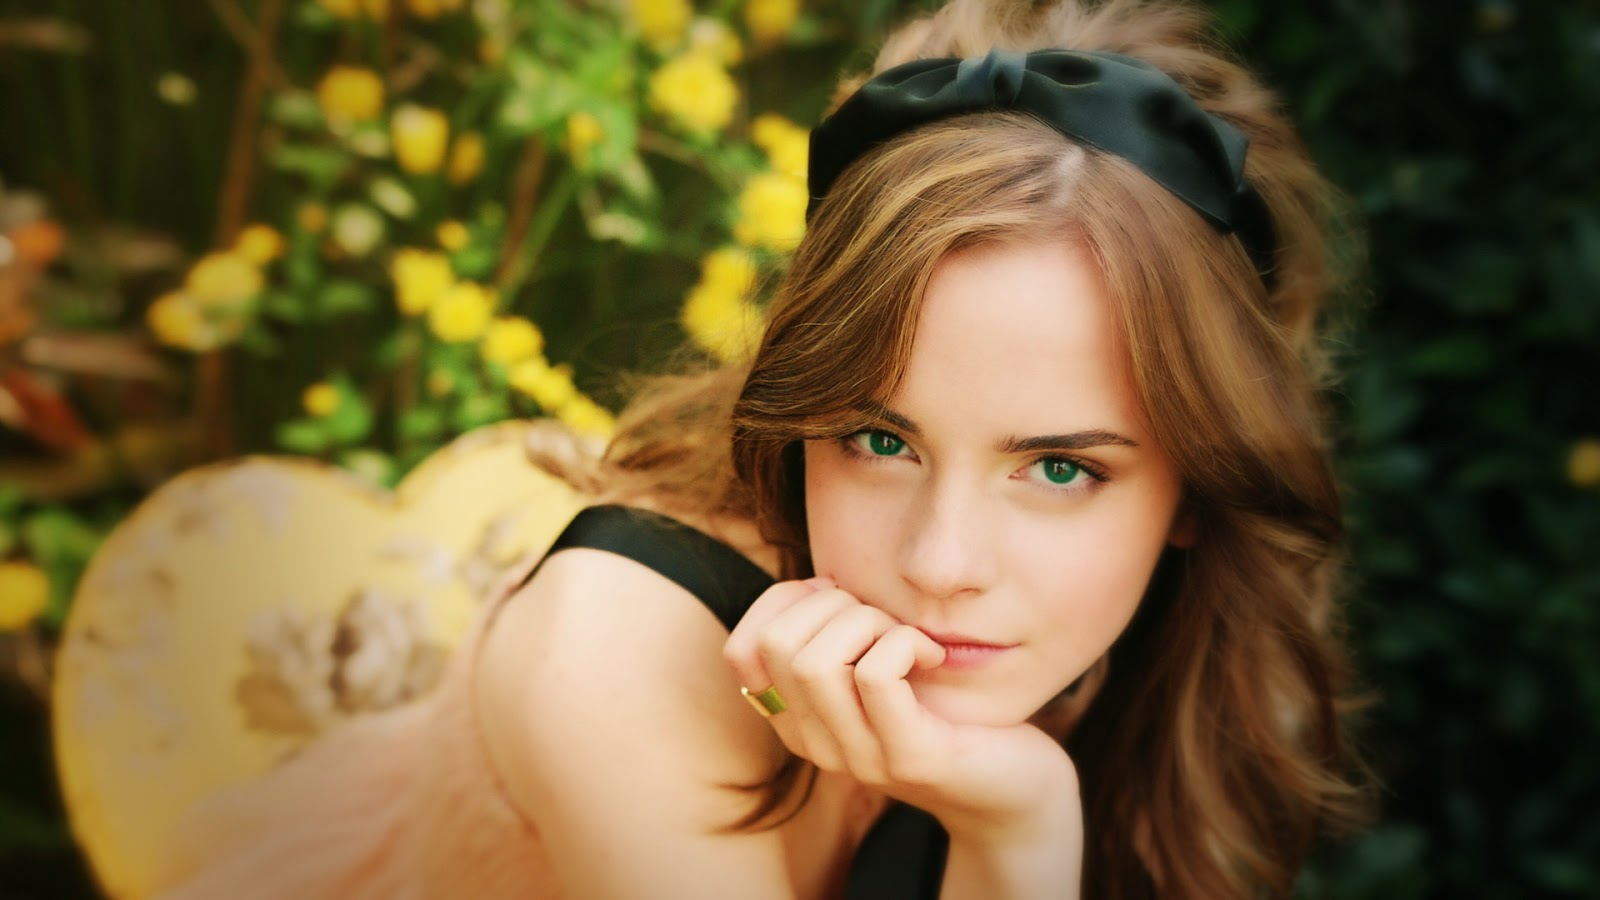 The latest HD Wallpapers collection of The Most Beautiful girls 1600x900